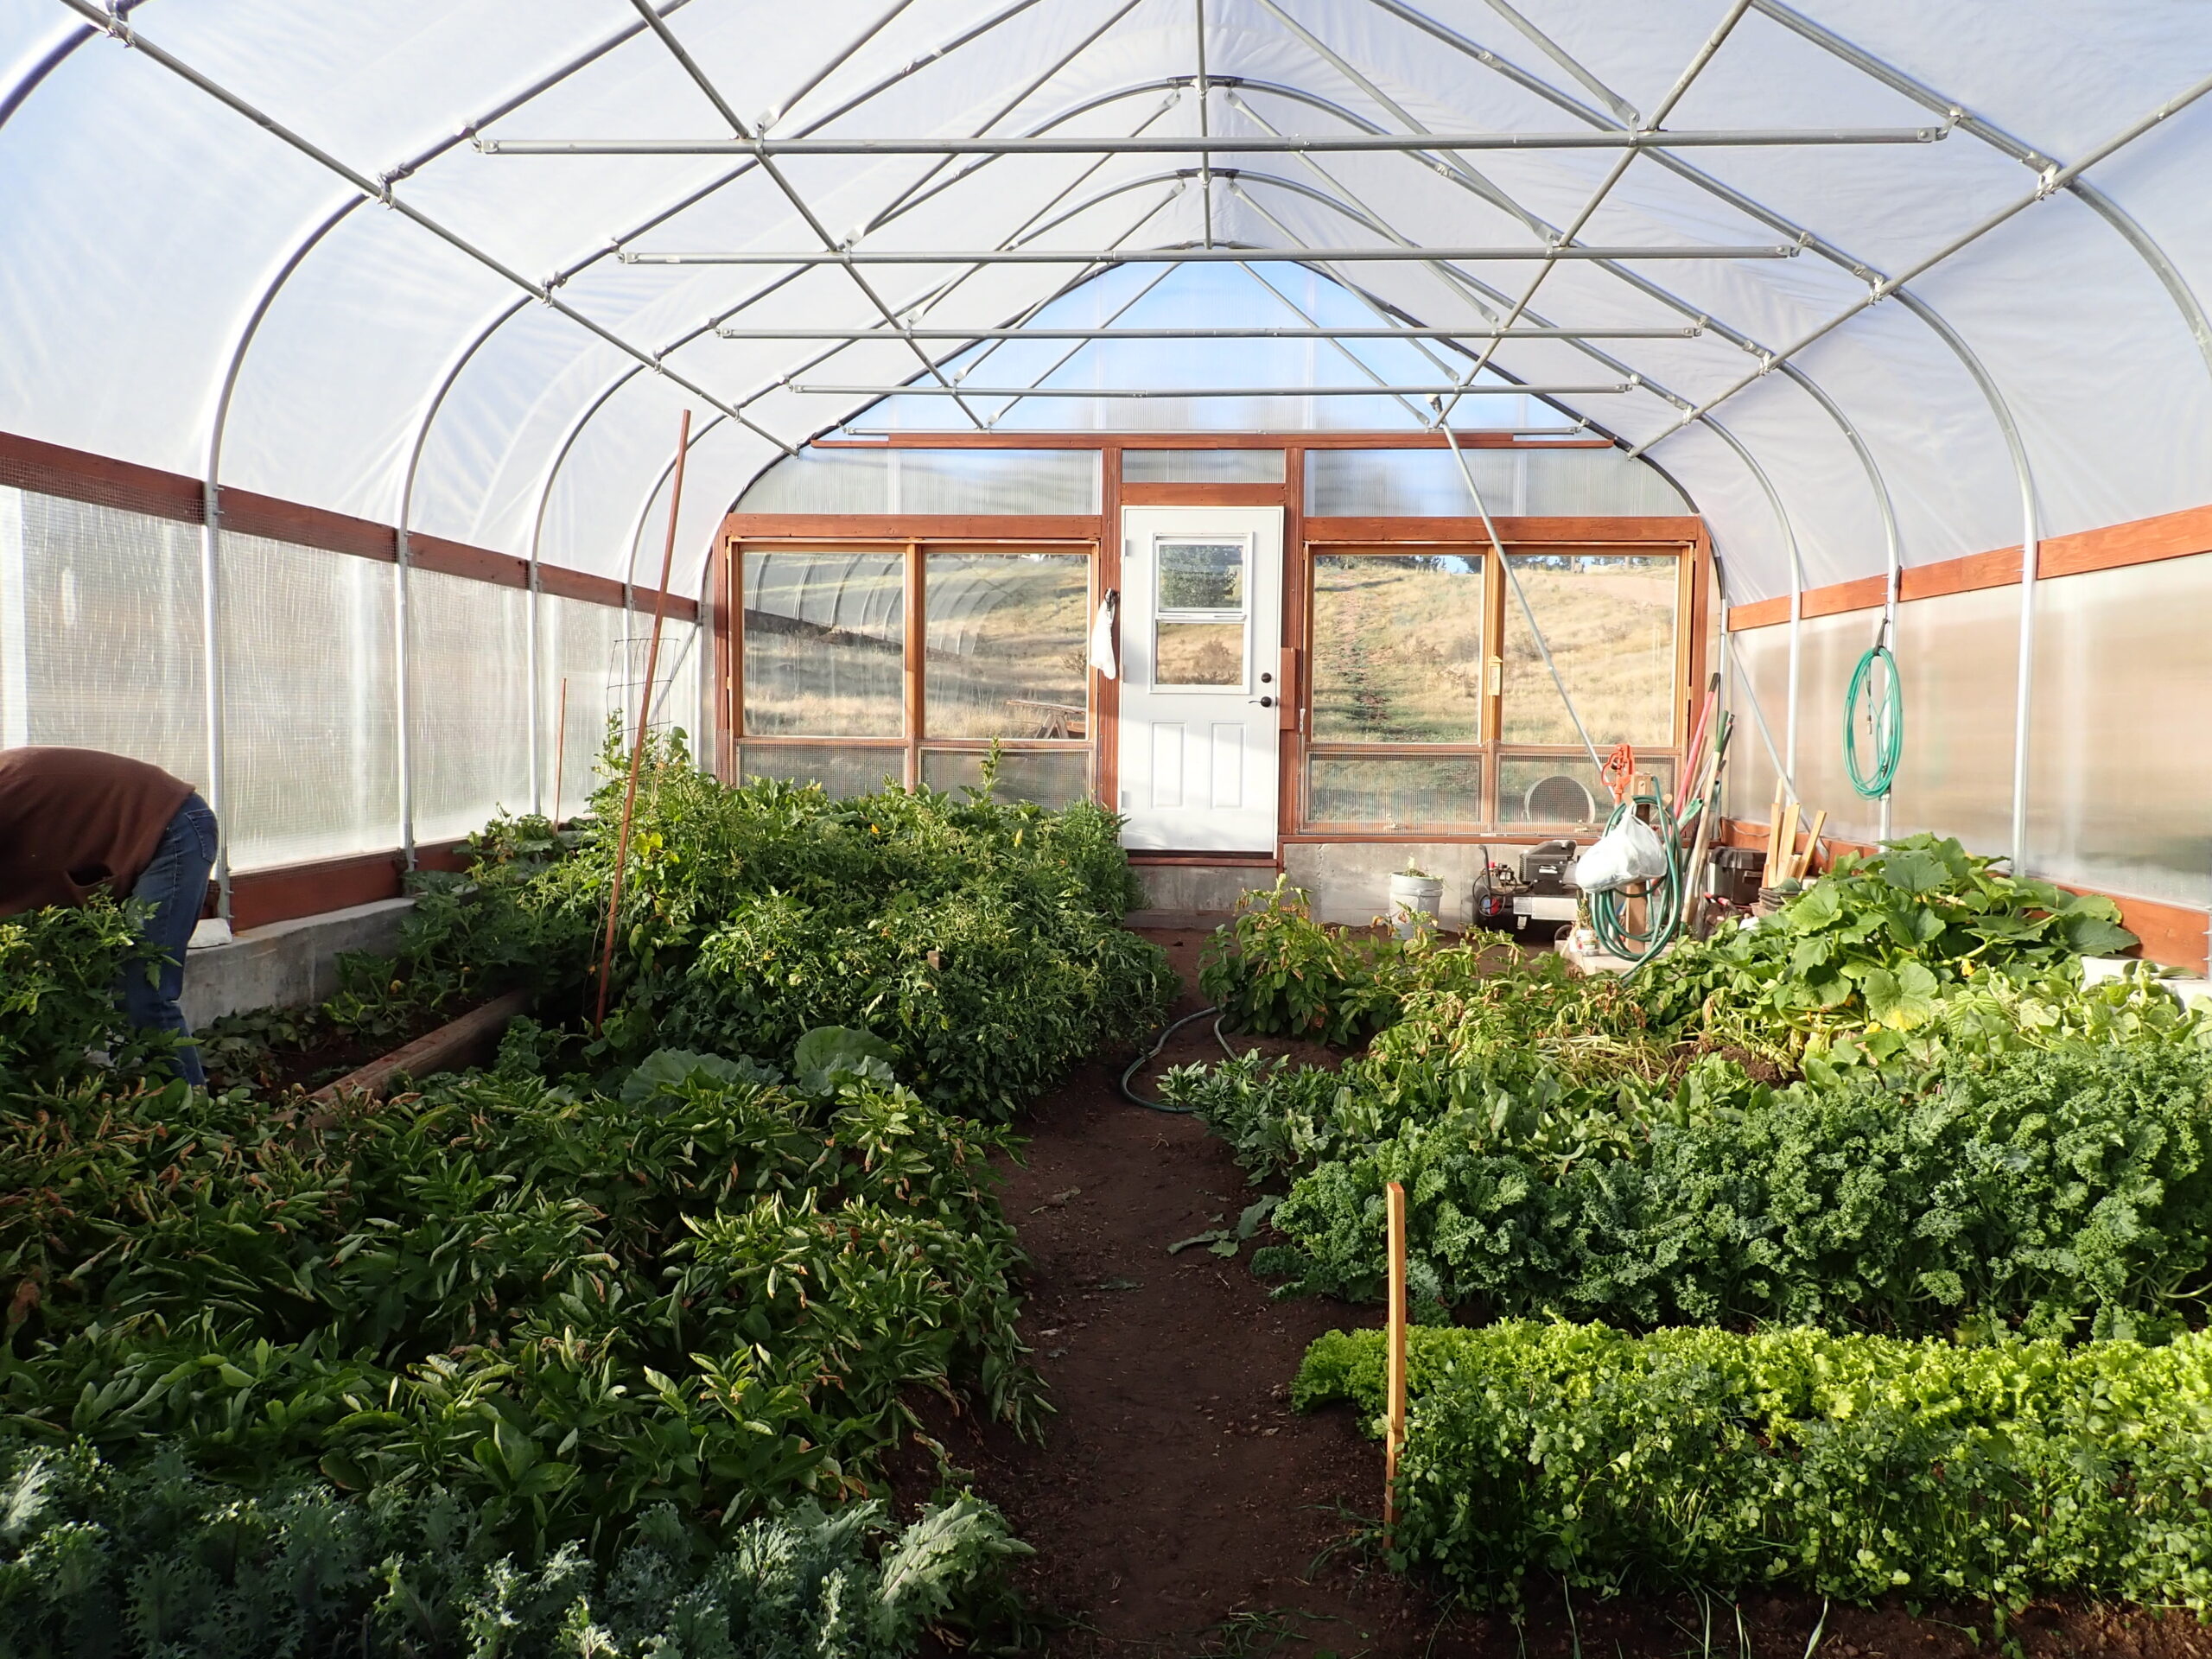 Colorado greenhouses,greenhouse,greenhouses,greenhouse kits,greenhouse contractor